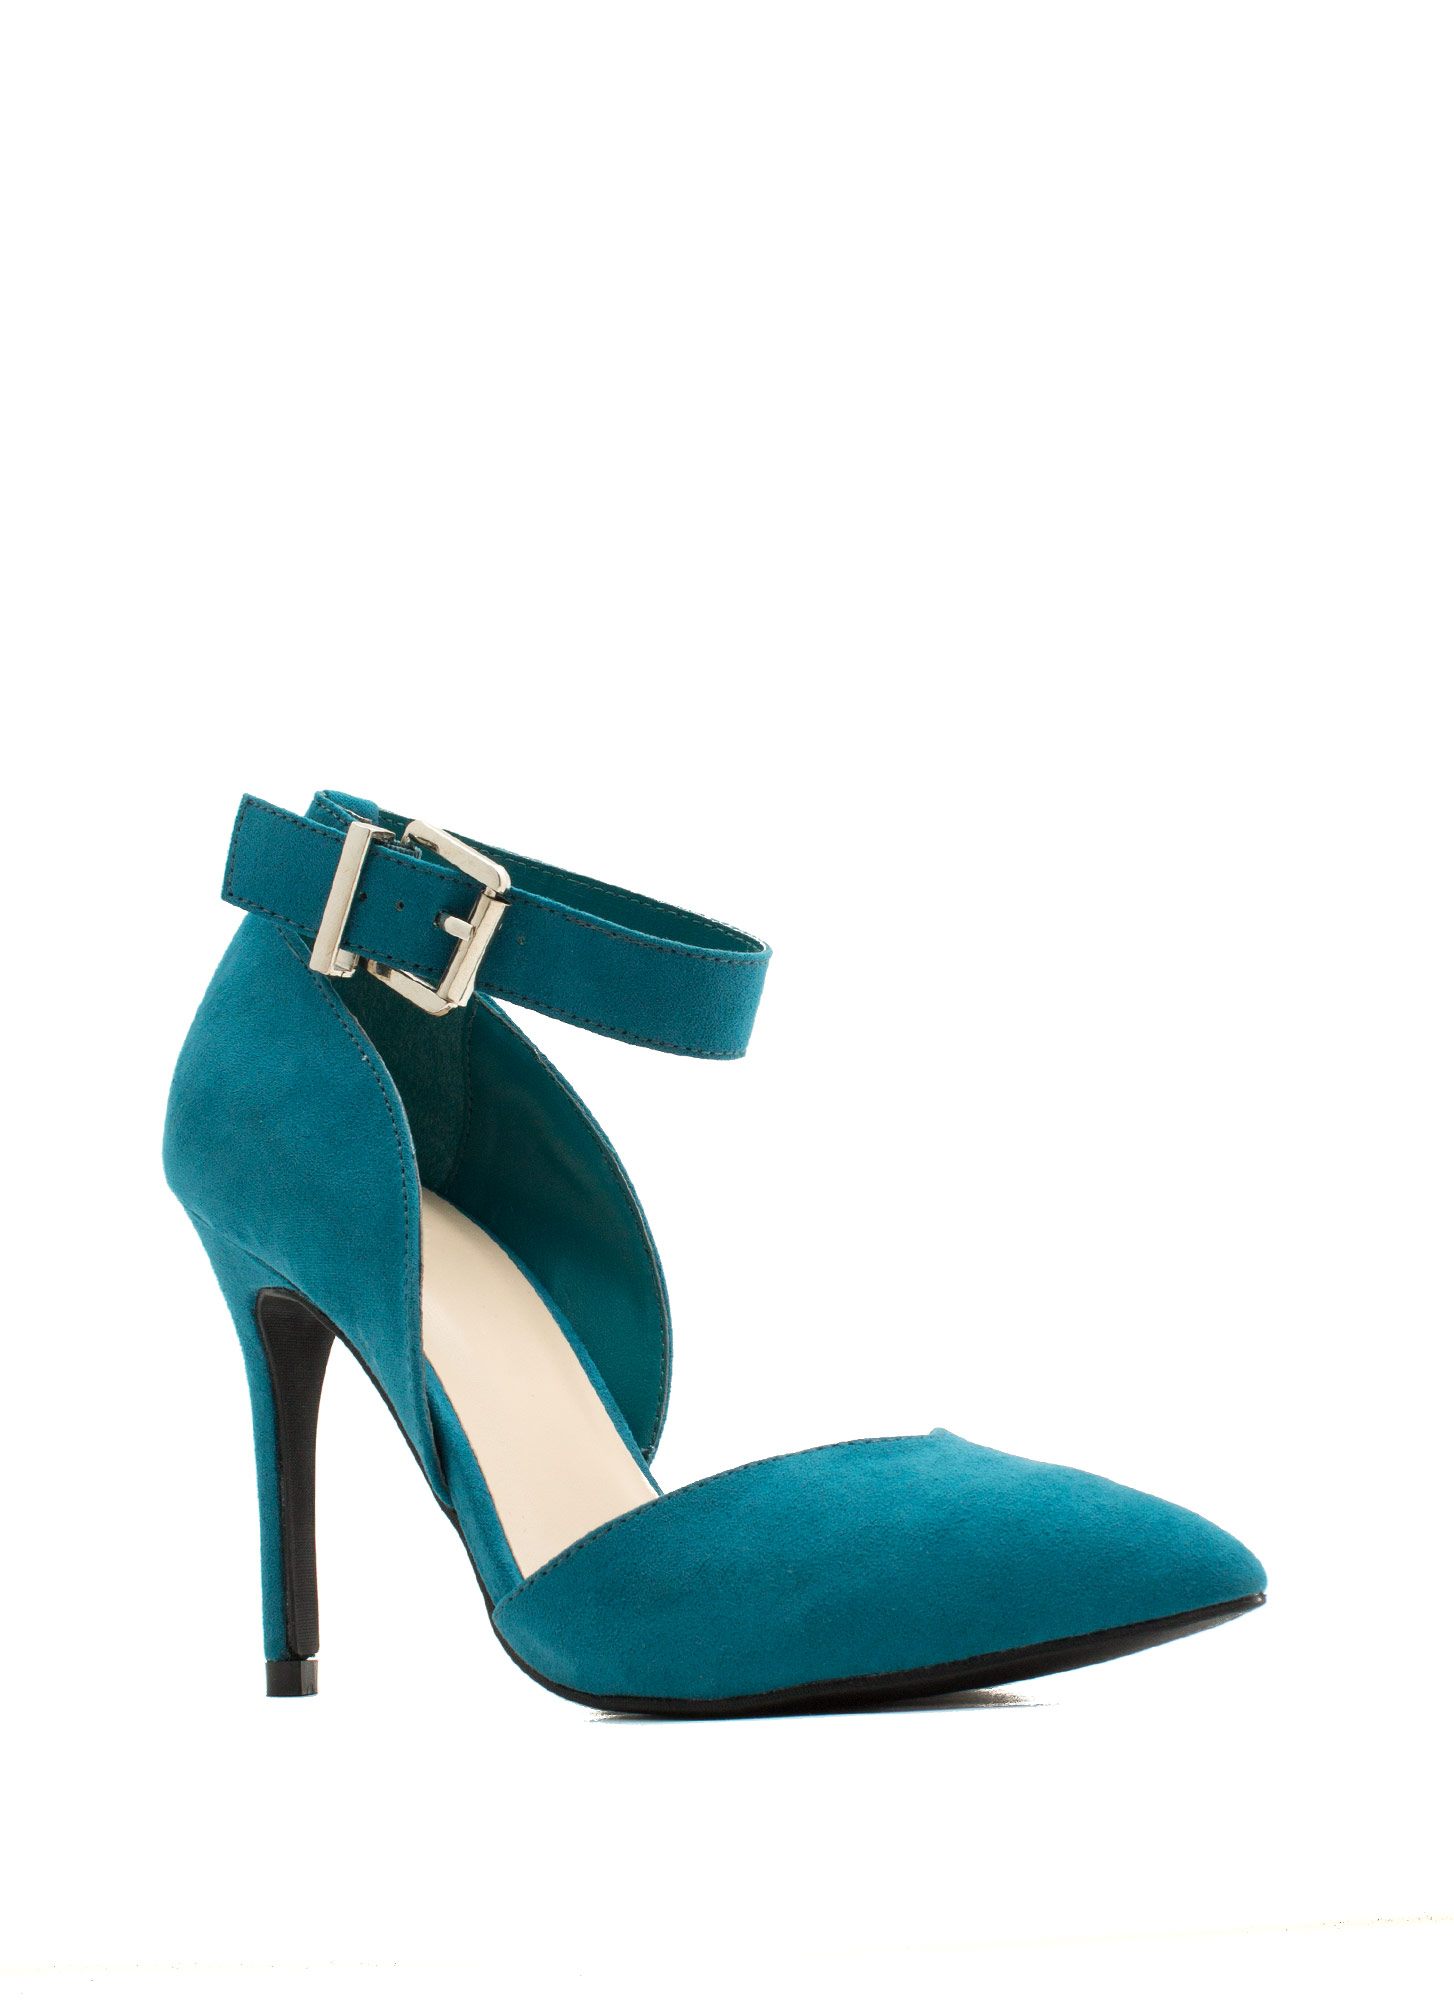 Fancy-Free Faux Suede Heels TEAL